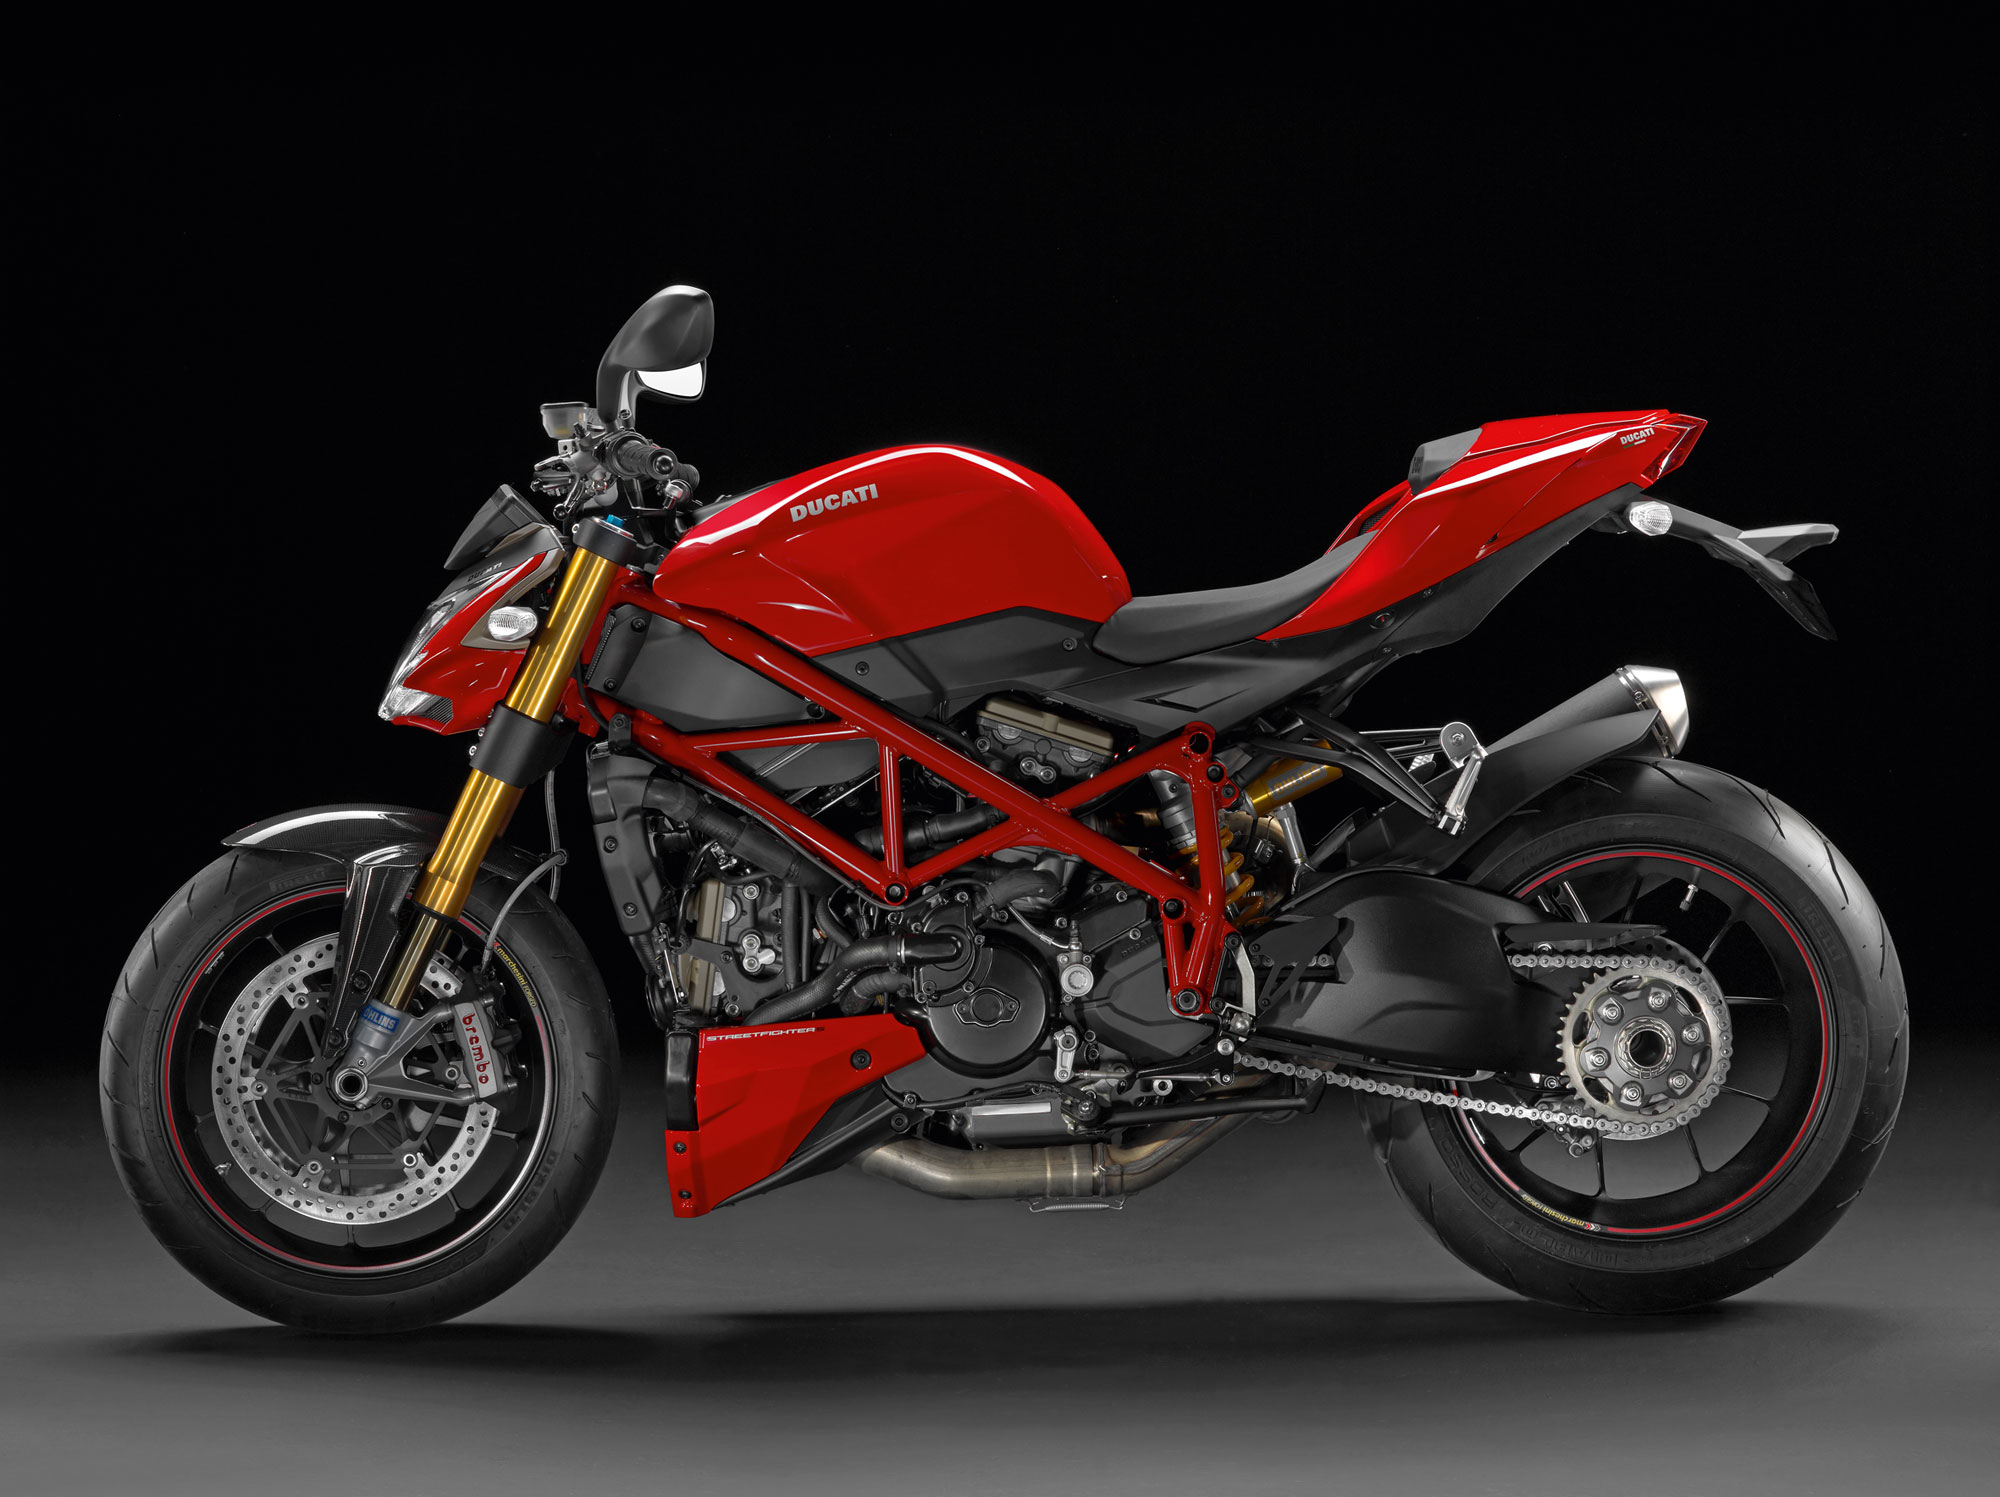 Ducati Streetfighter  Traction Control